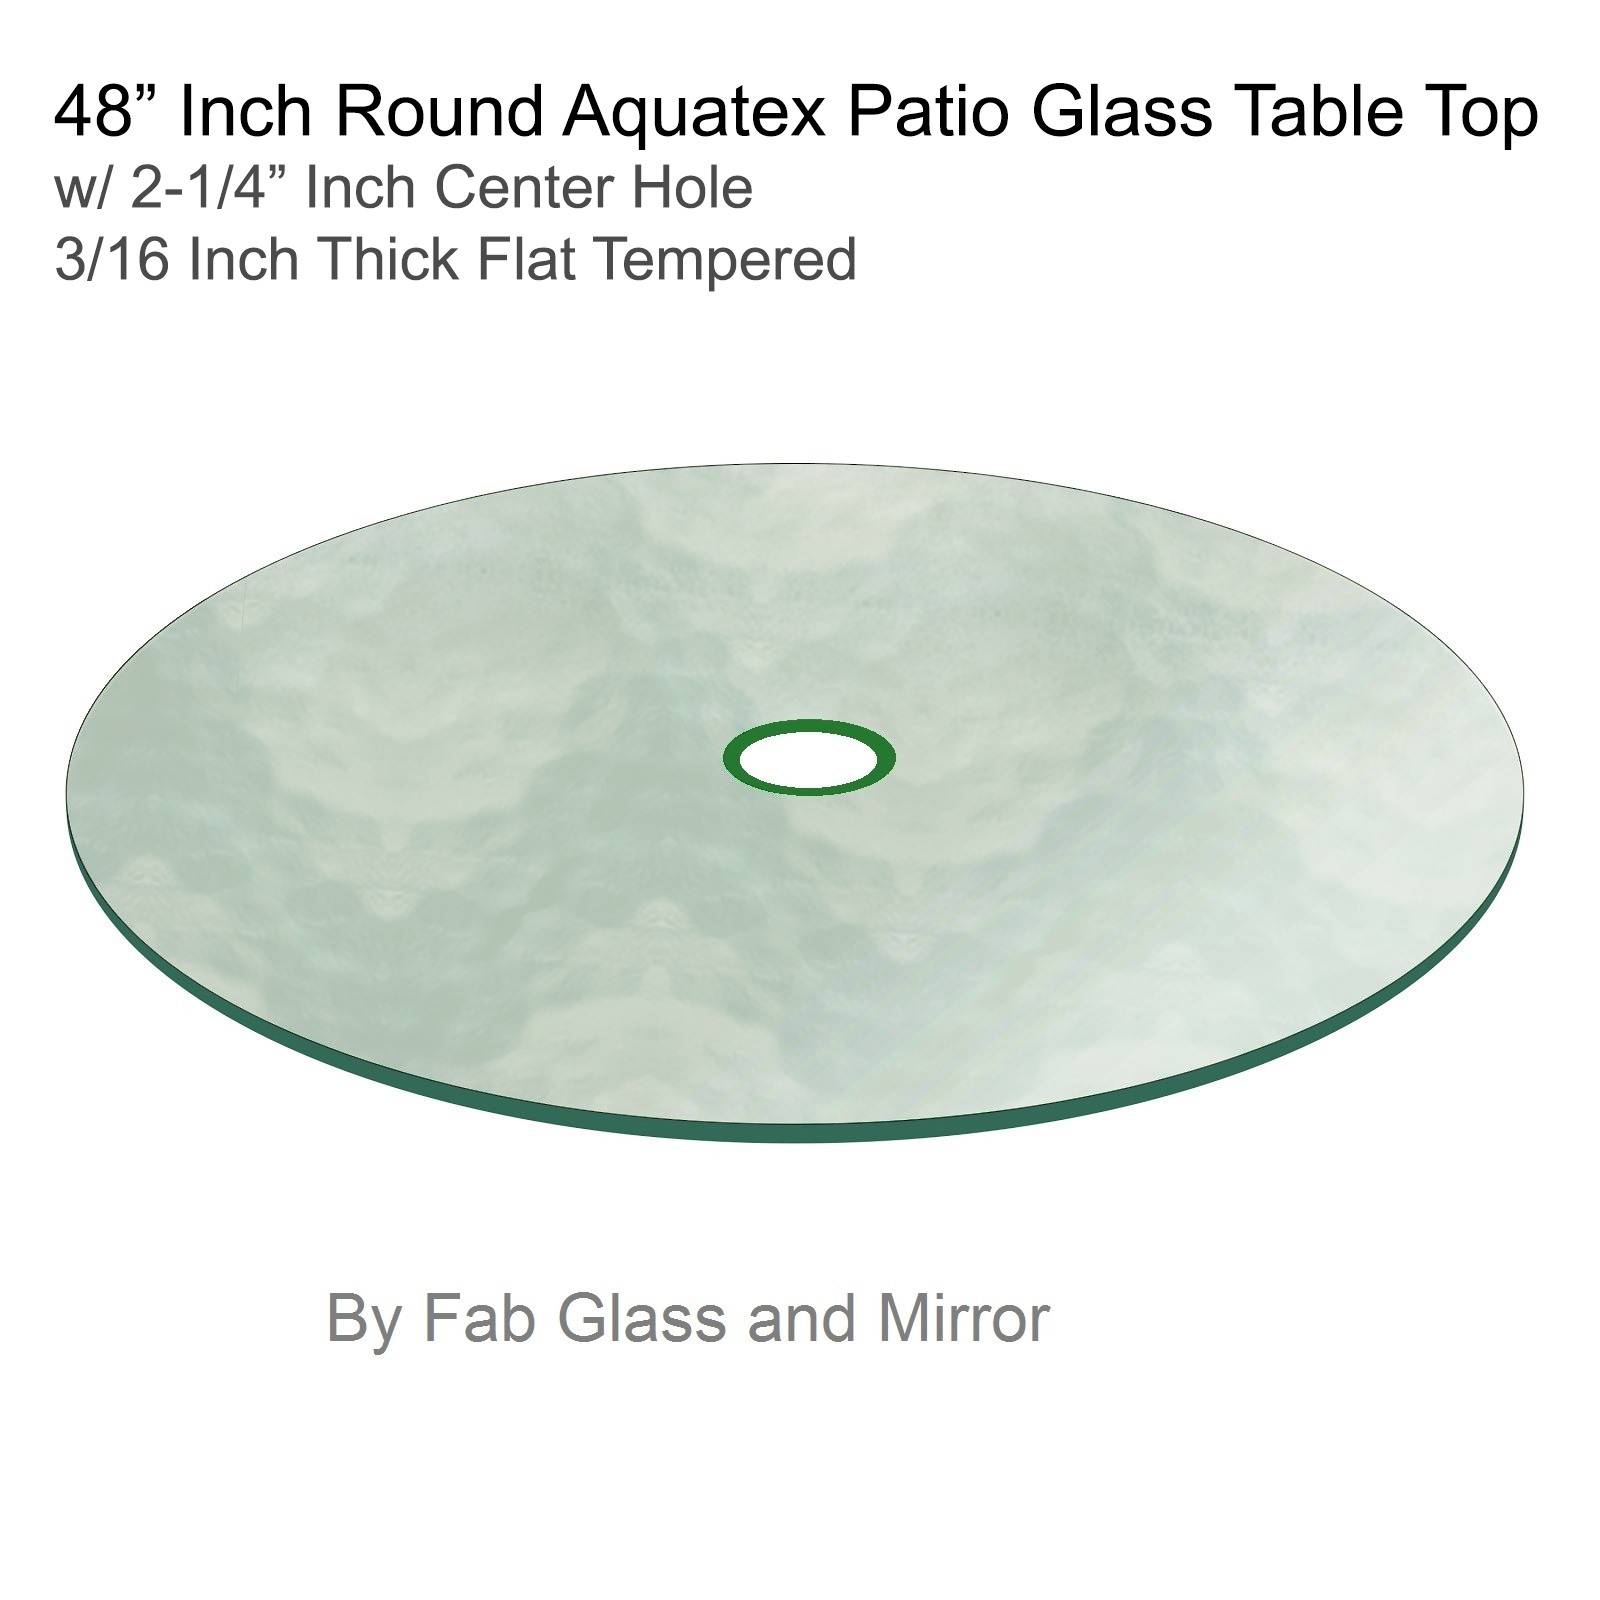 Aquatex Round Patio Glass Table Top 1 8